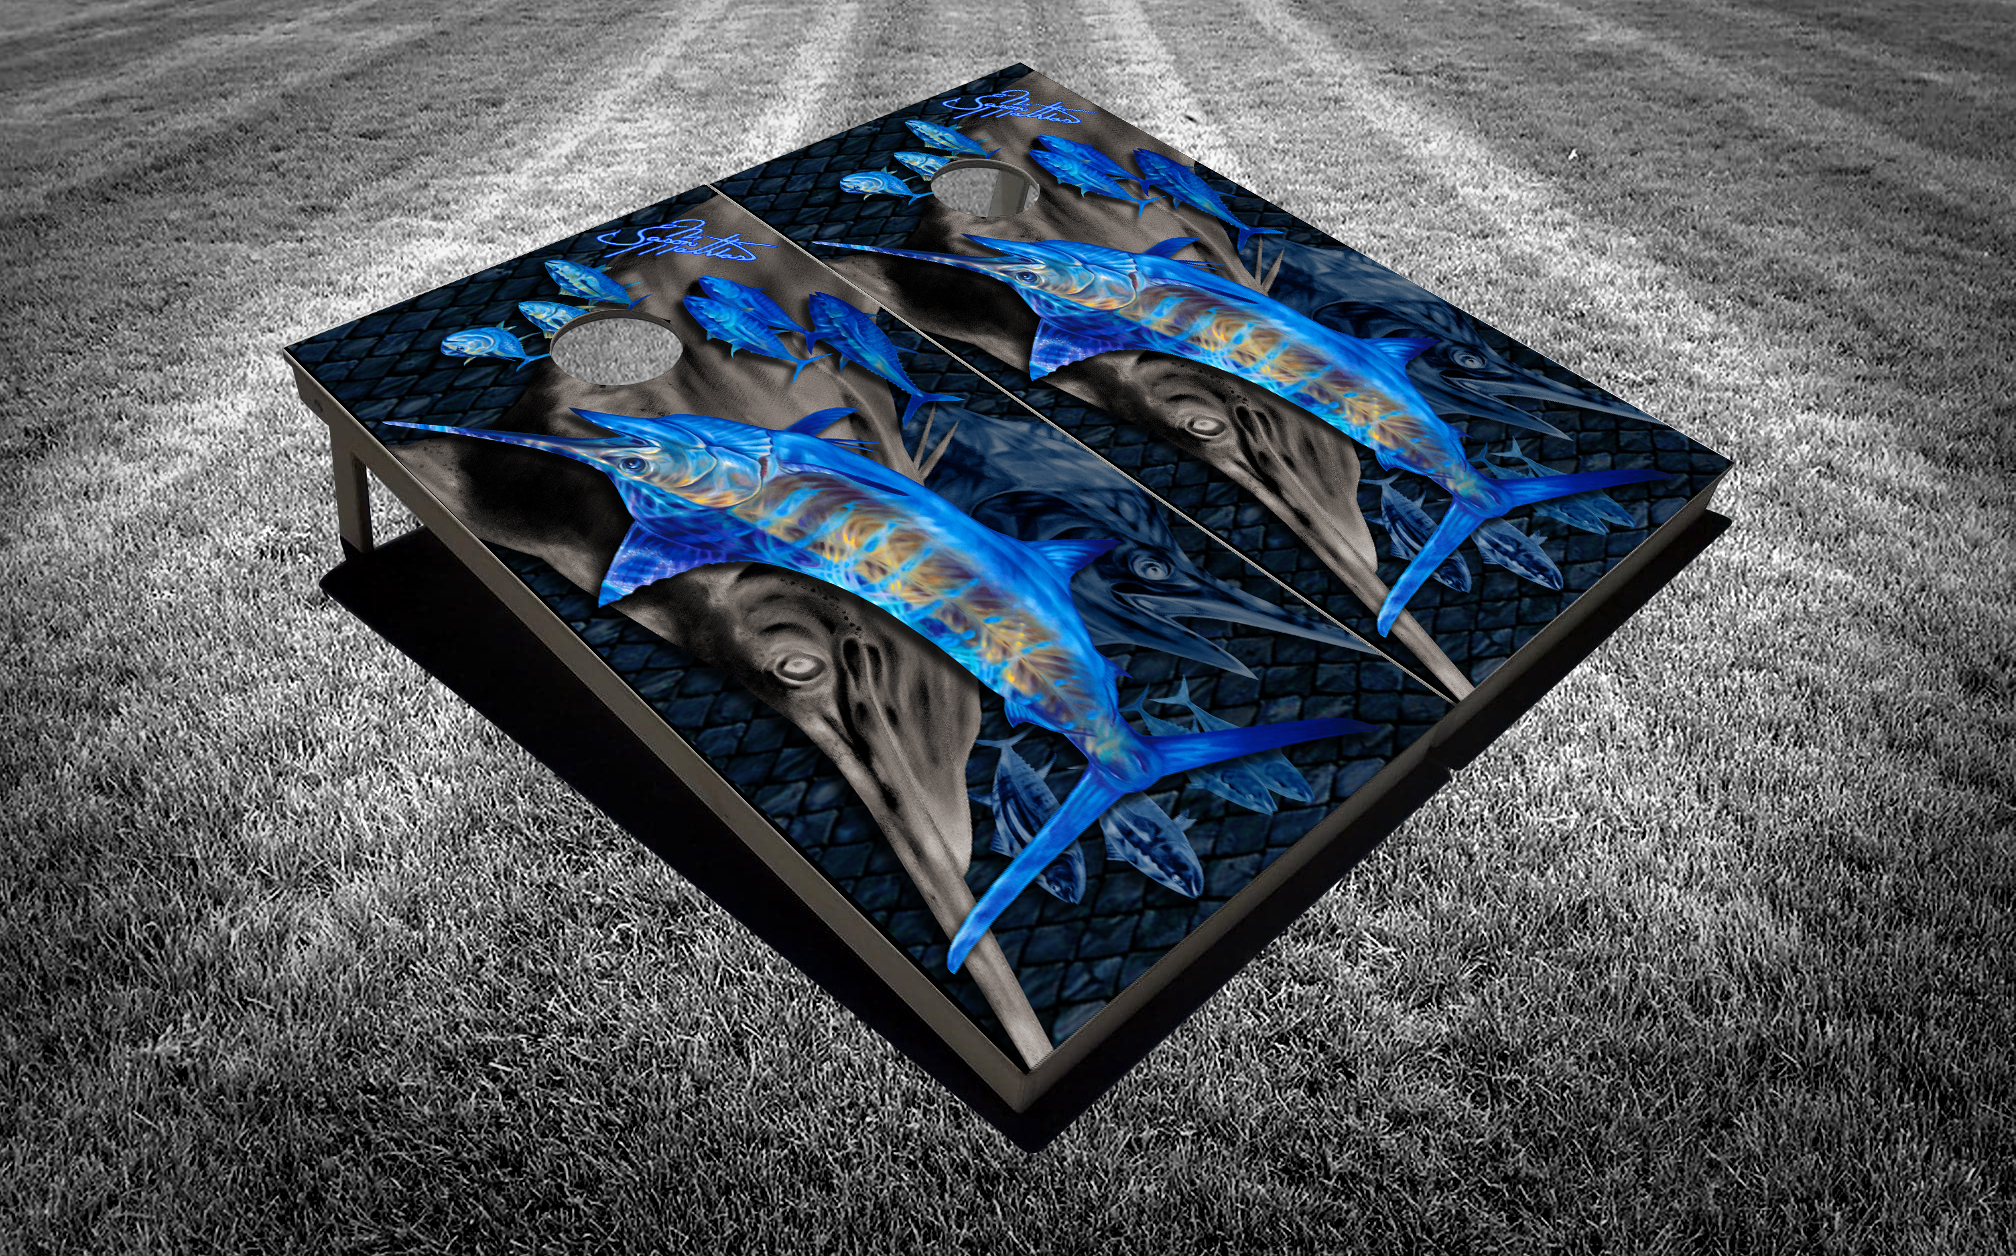 jason-mathias-cornhole-board-blue-marlin-tuna-fishing-artwork.jpg